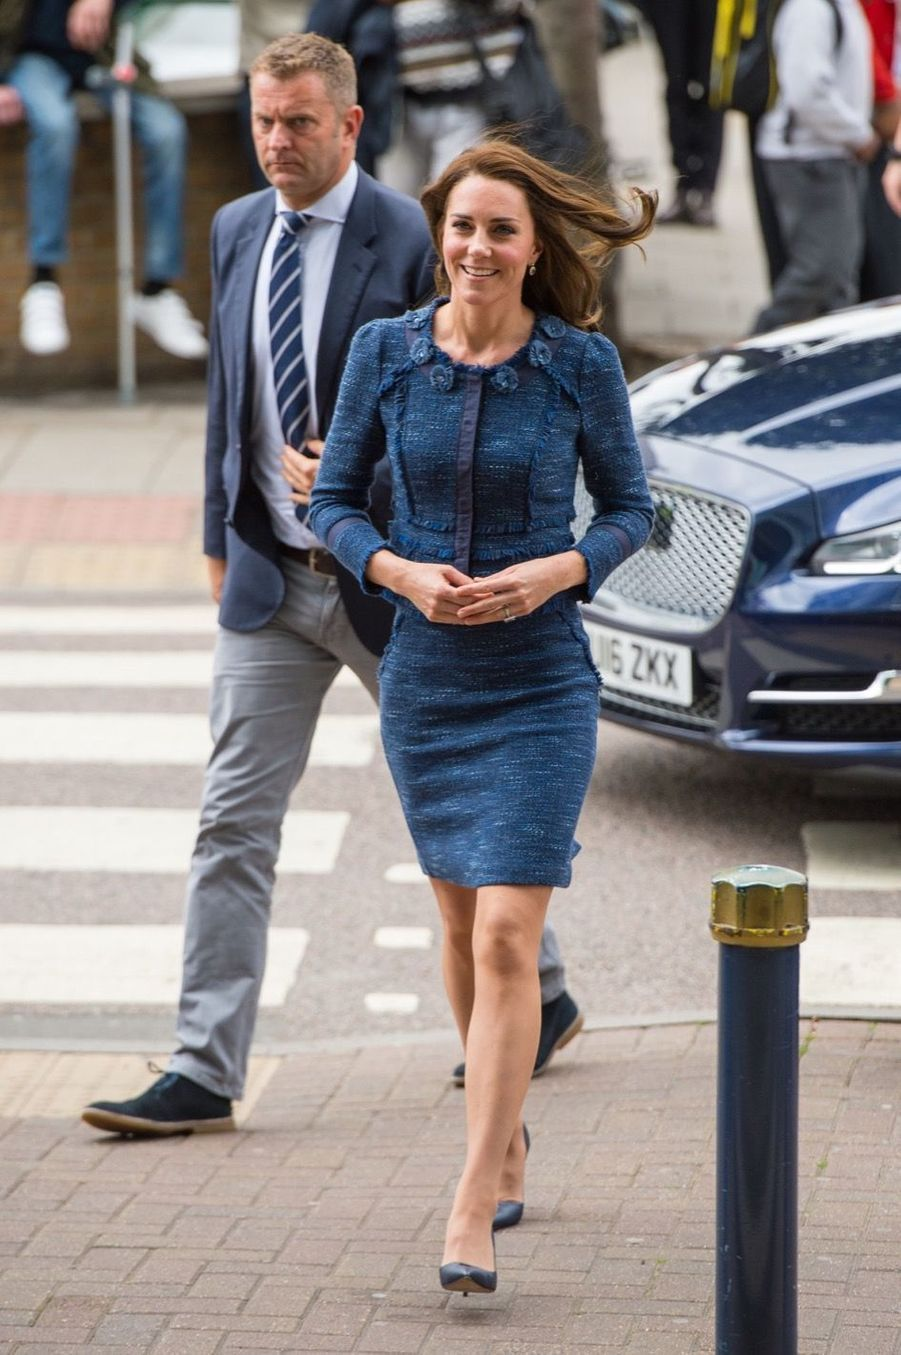 Kate Middleton En Visite Au Kings College Hospital, Le 12 Juin 1